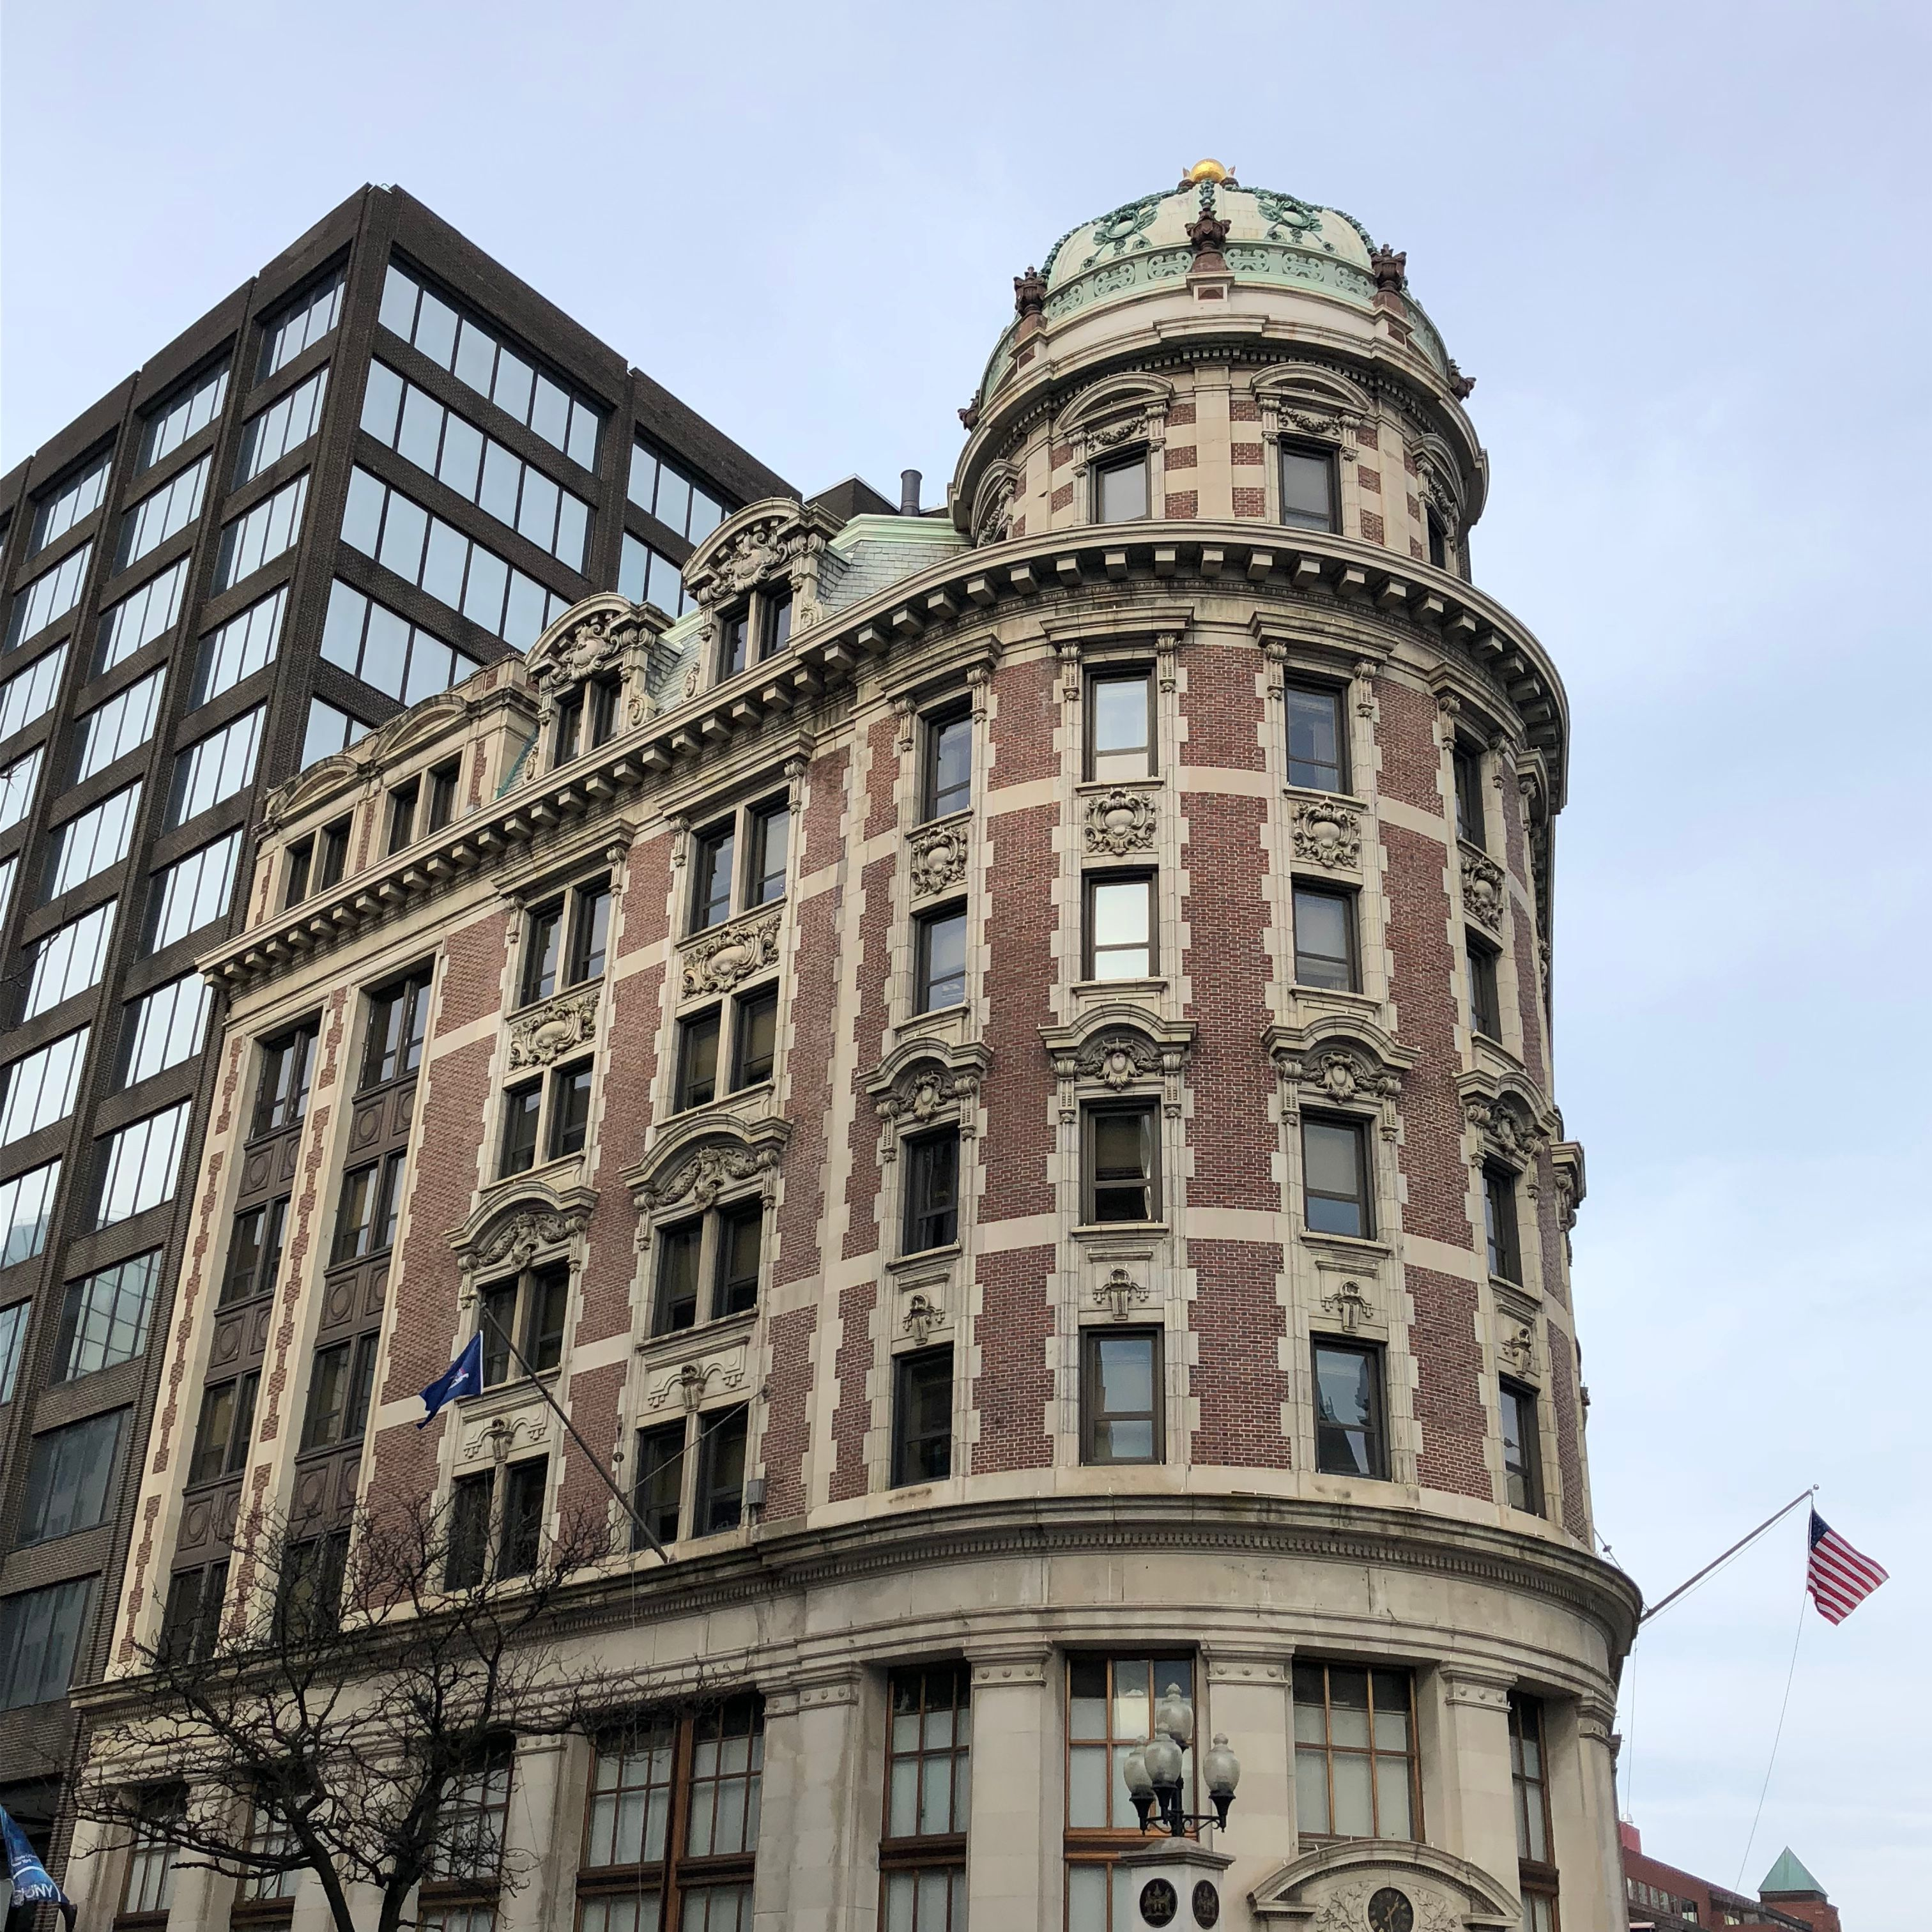 Discover Historic Buildings And Architecture In Albany New York New York Hotels Albany Historic Buildings